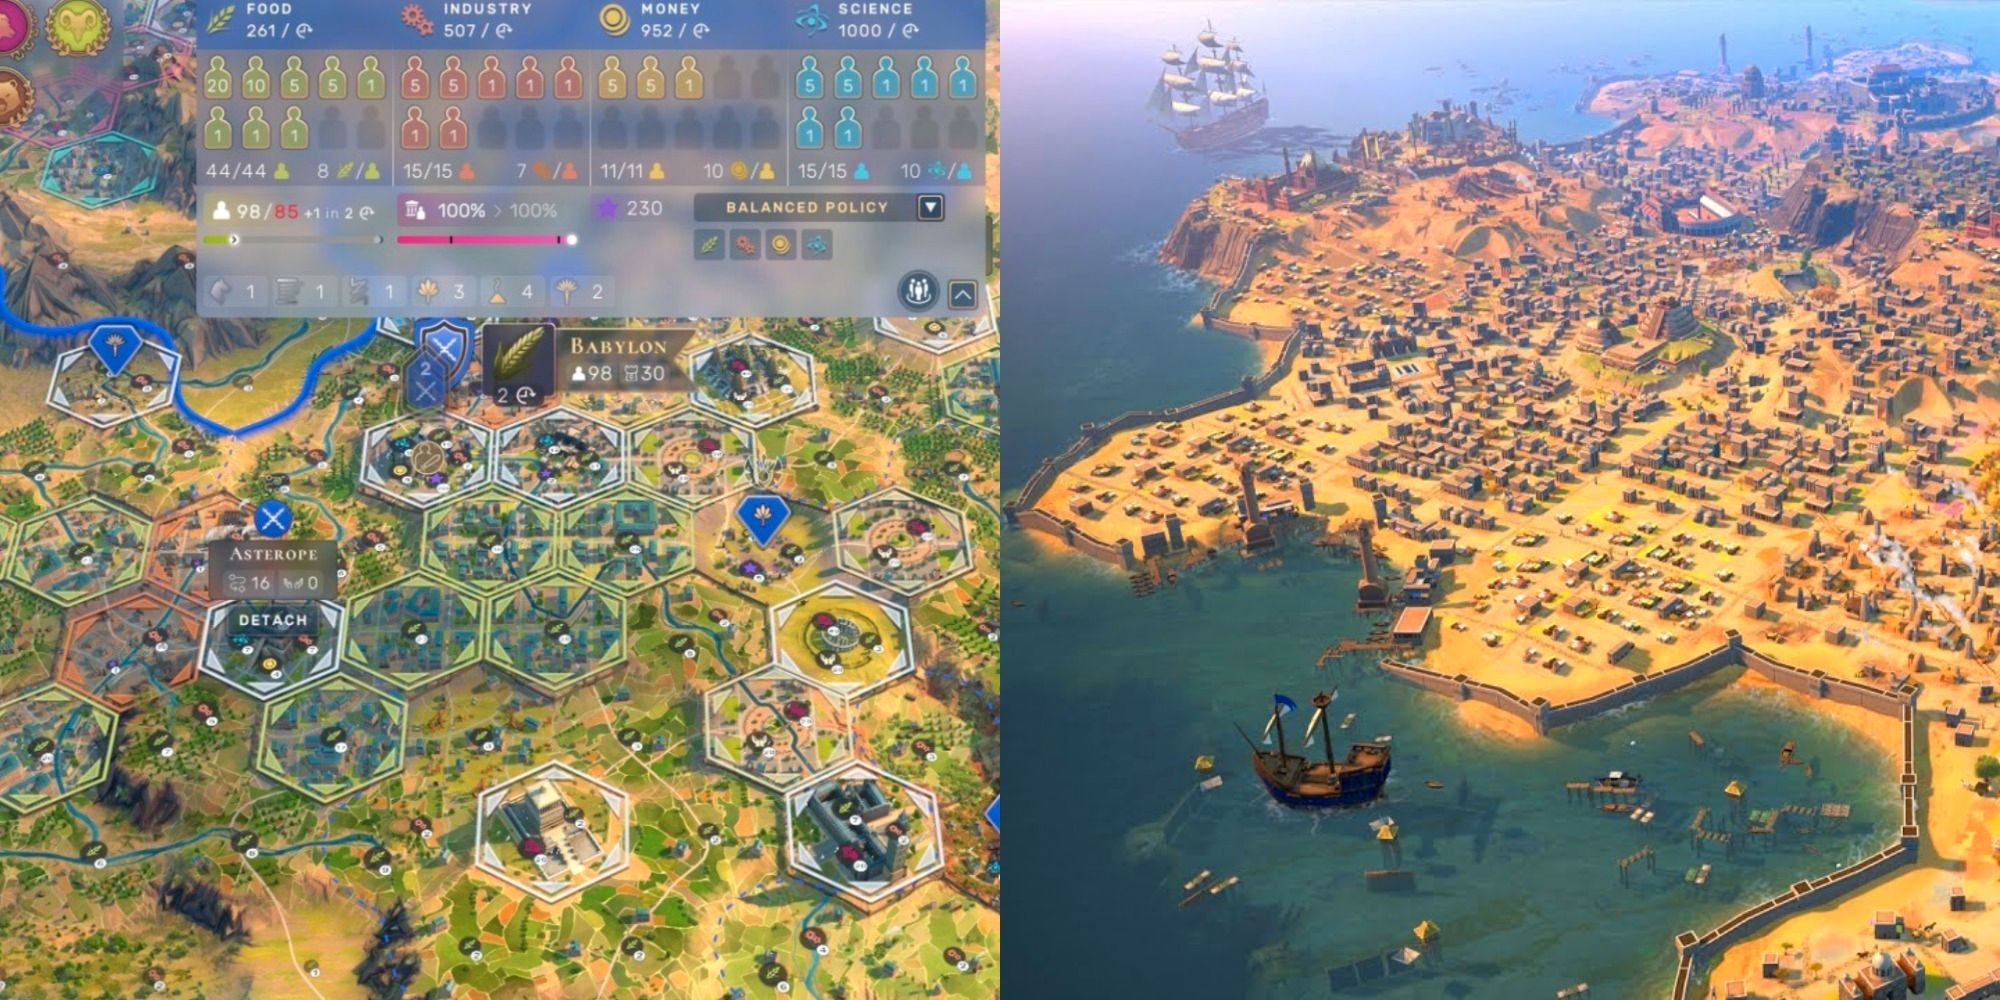 Humankind: City Management Guide